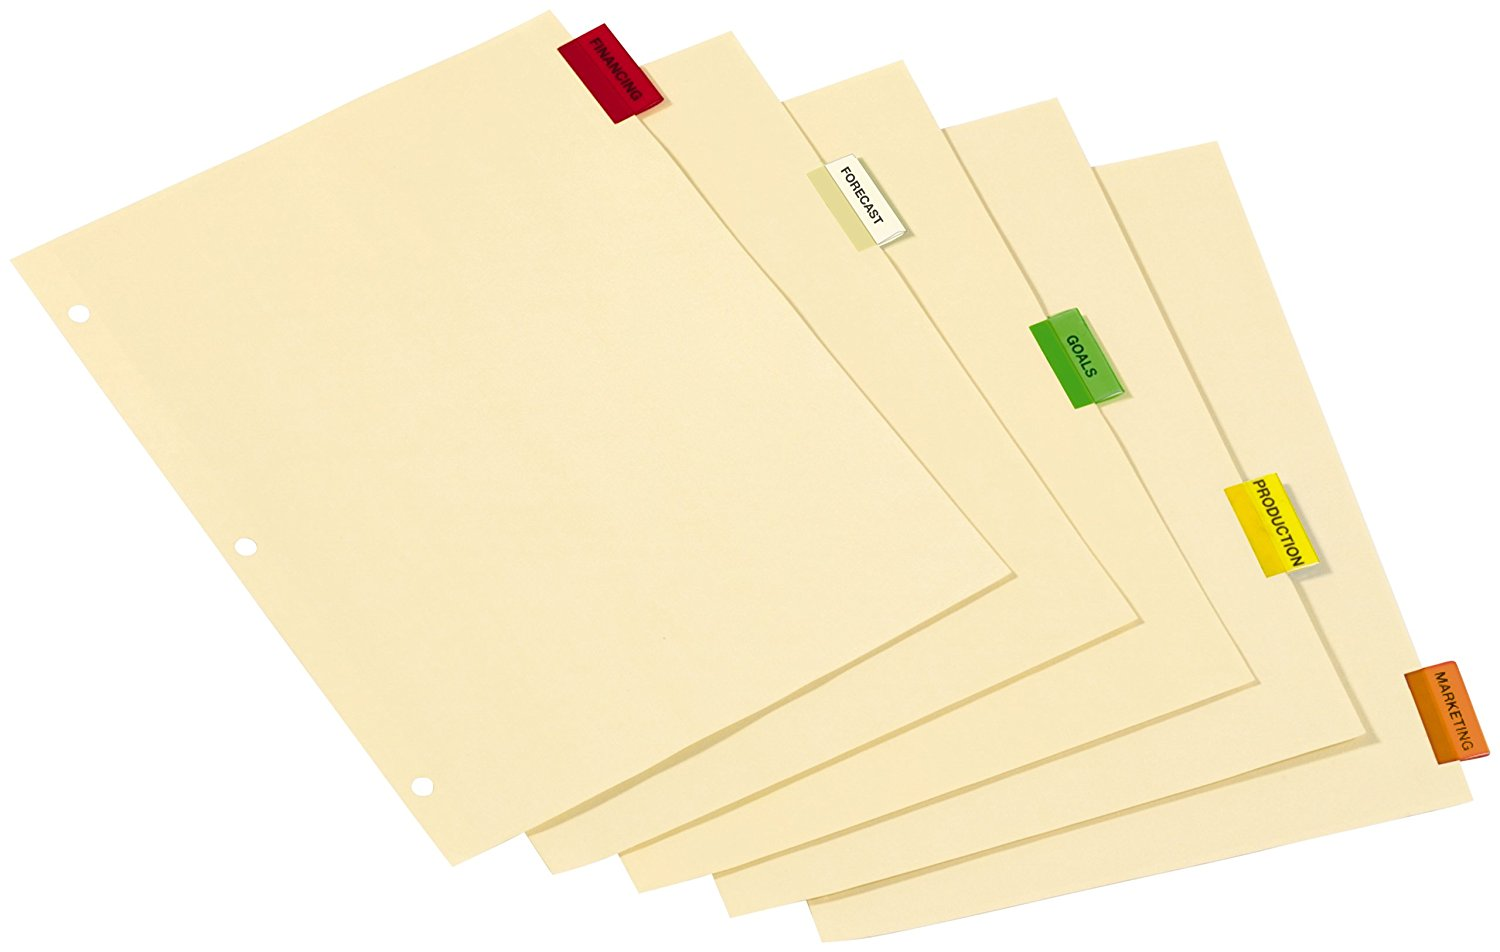 TOPS Cardinal Insertable Index Paper Dividers, 5-Tab, Multi-Colored, (61538)